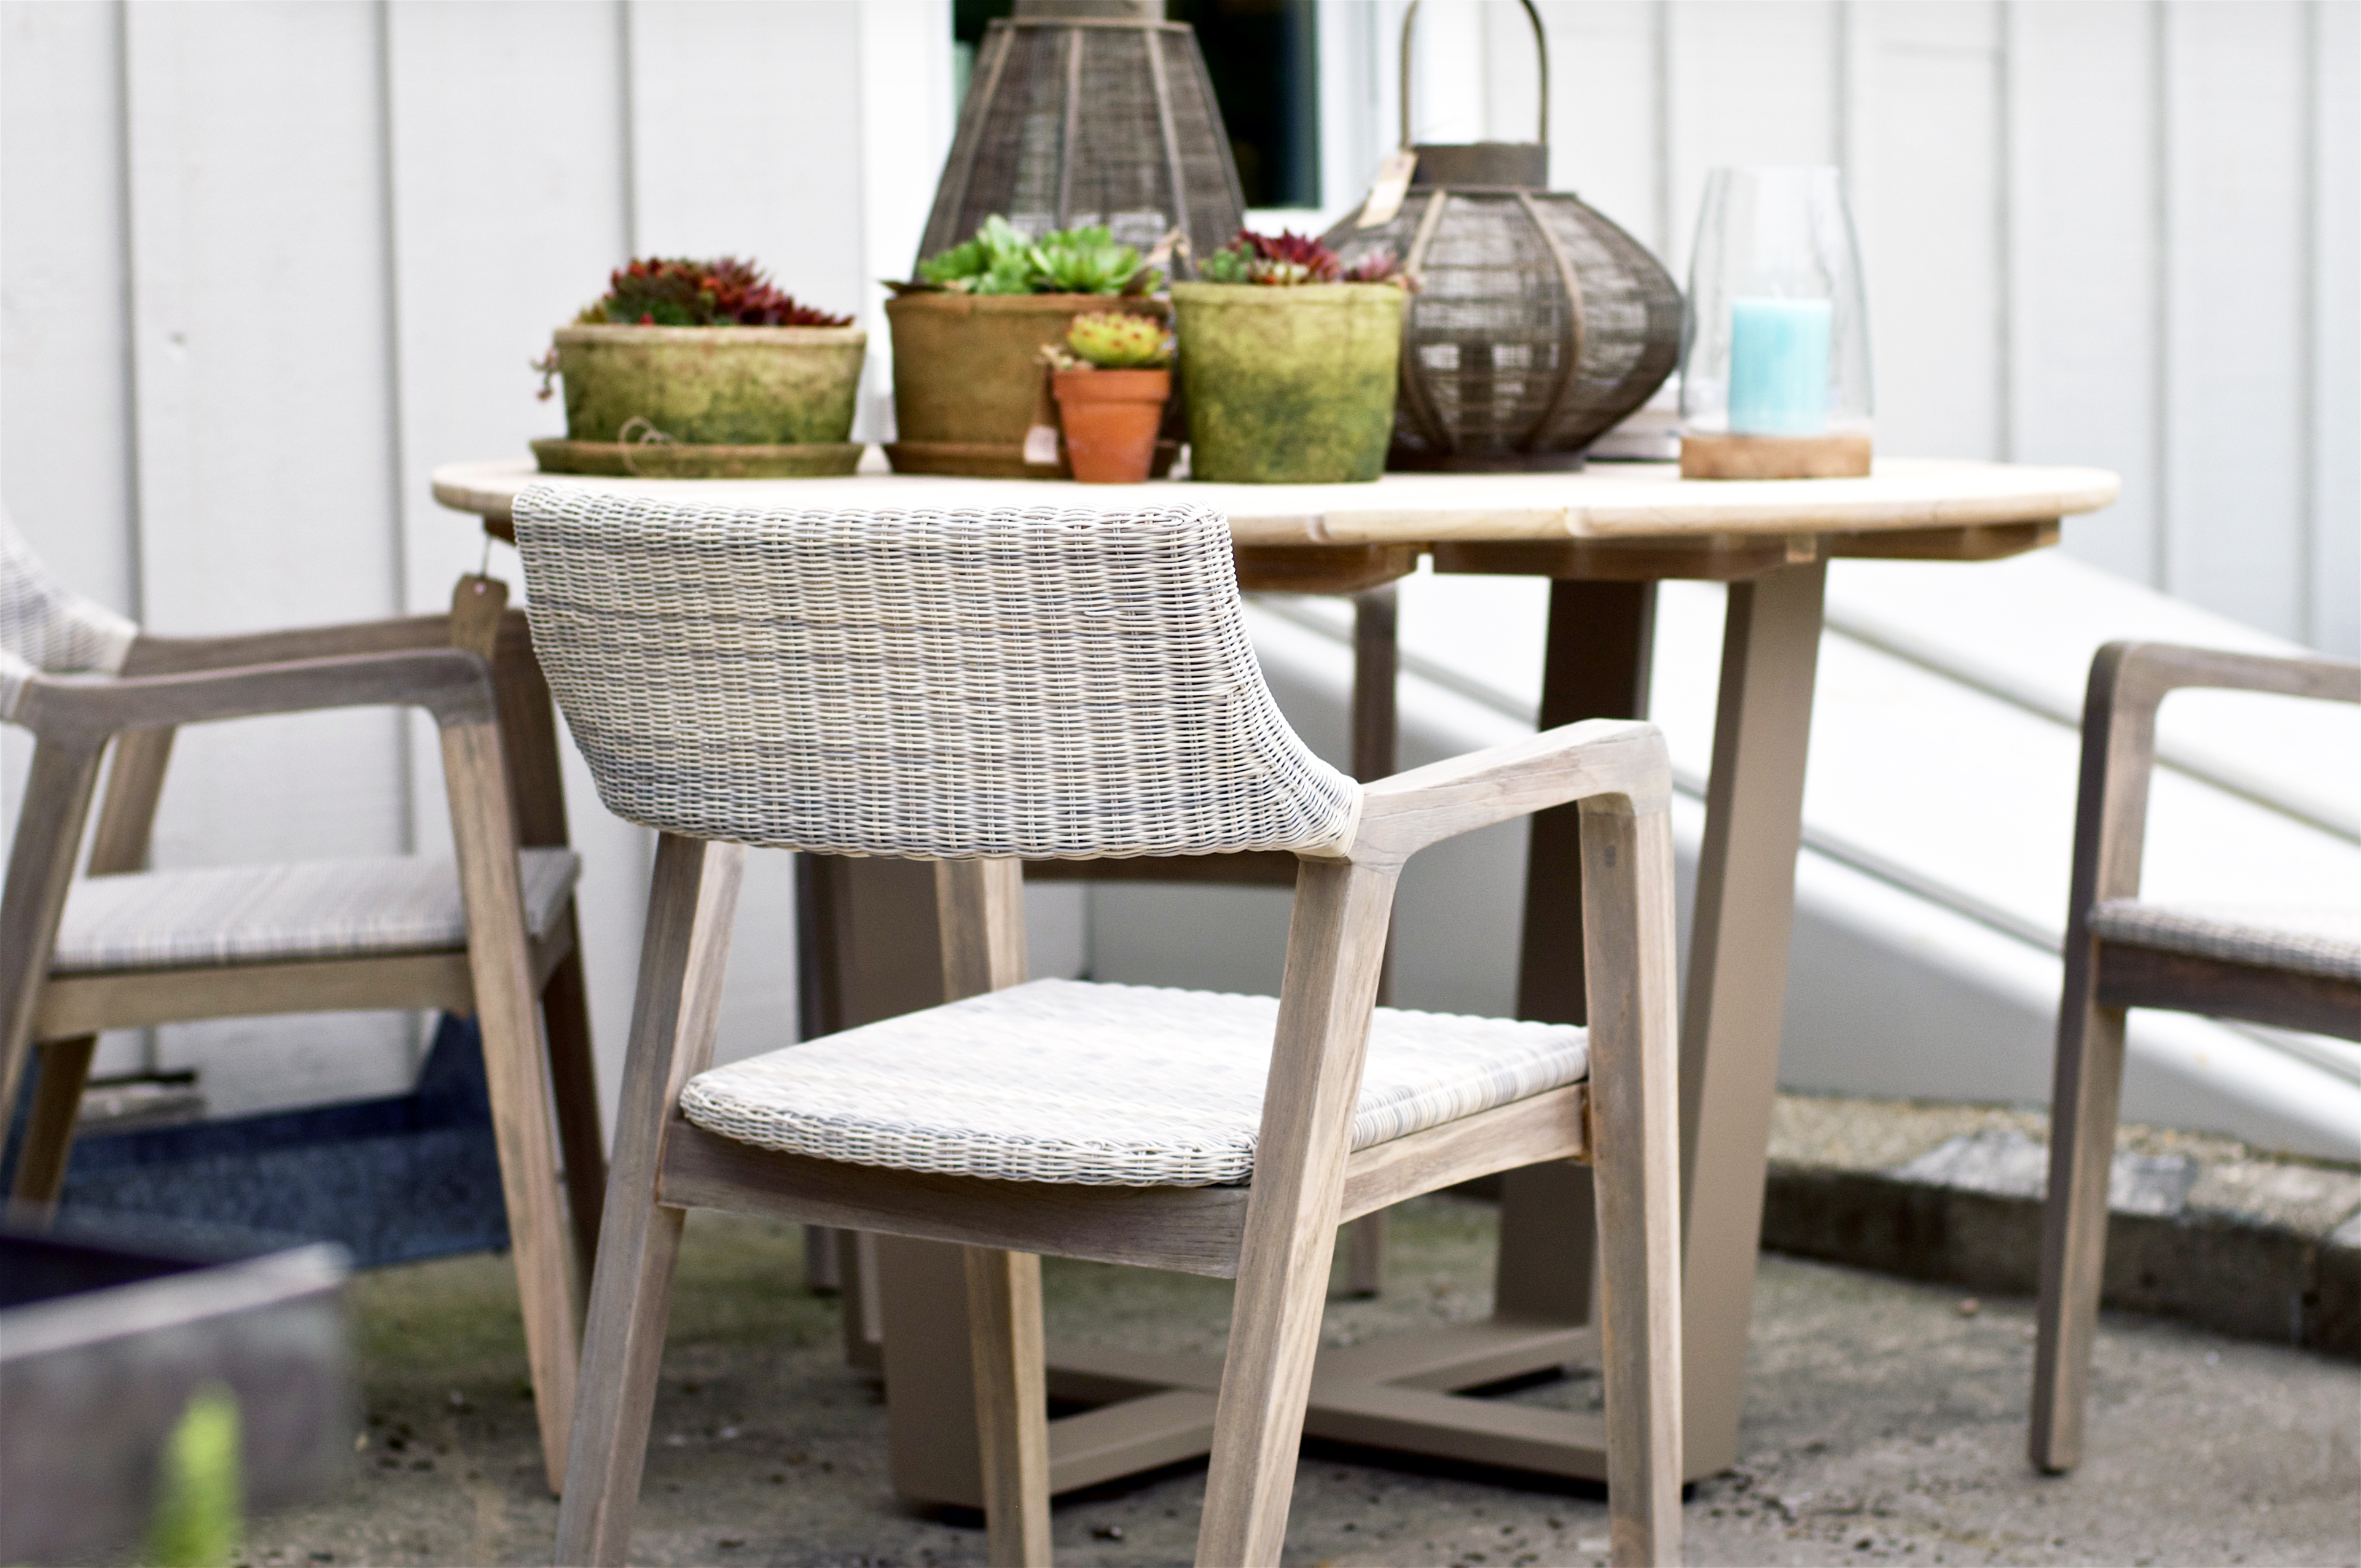 Phoebe U0026 Belle Is A Lifestyle Store Offering Furniture, Home Décor ,  Gifts, Pantry Items, And Garden Accessories. Inspired By The Ease Of Long  Islandu0027s ...